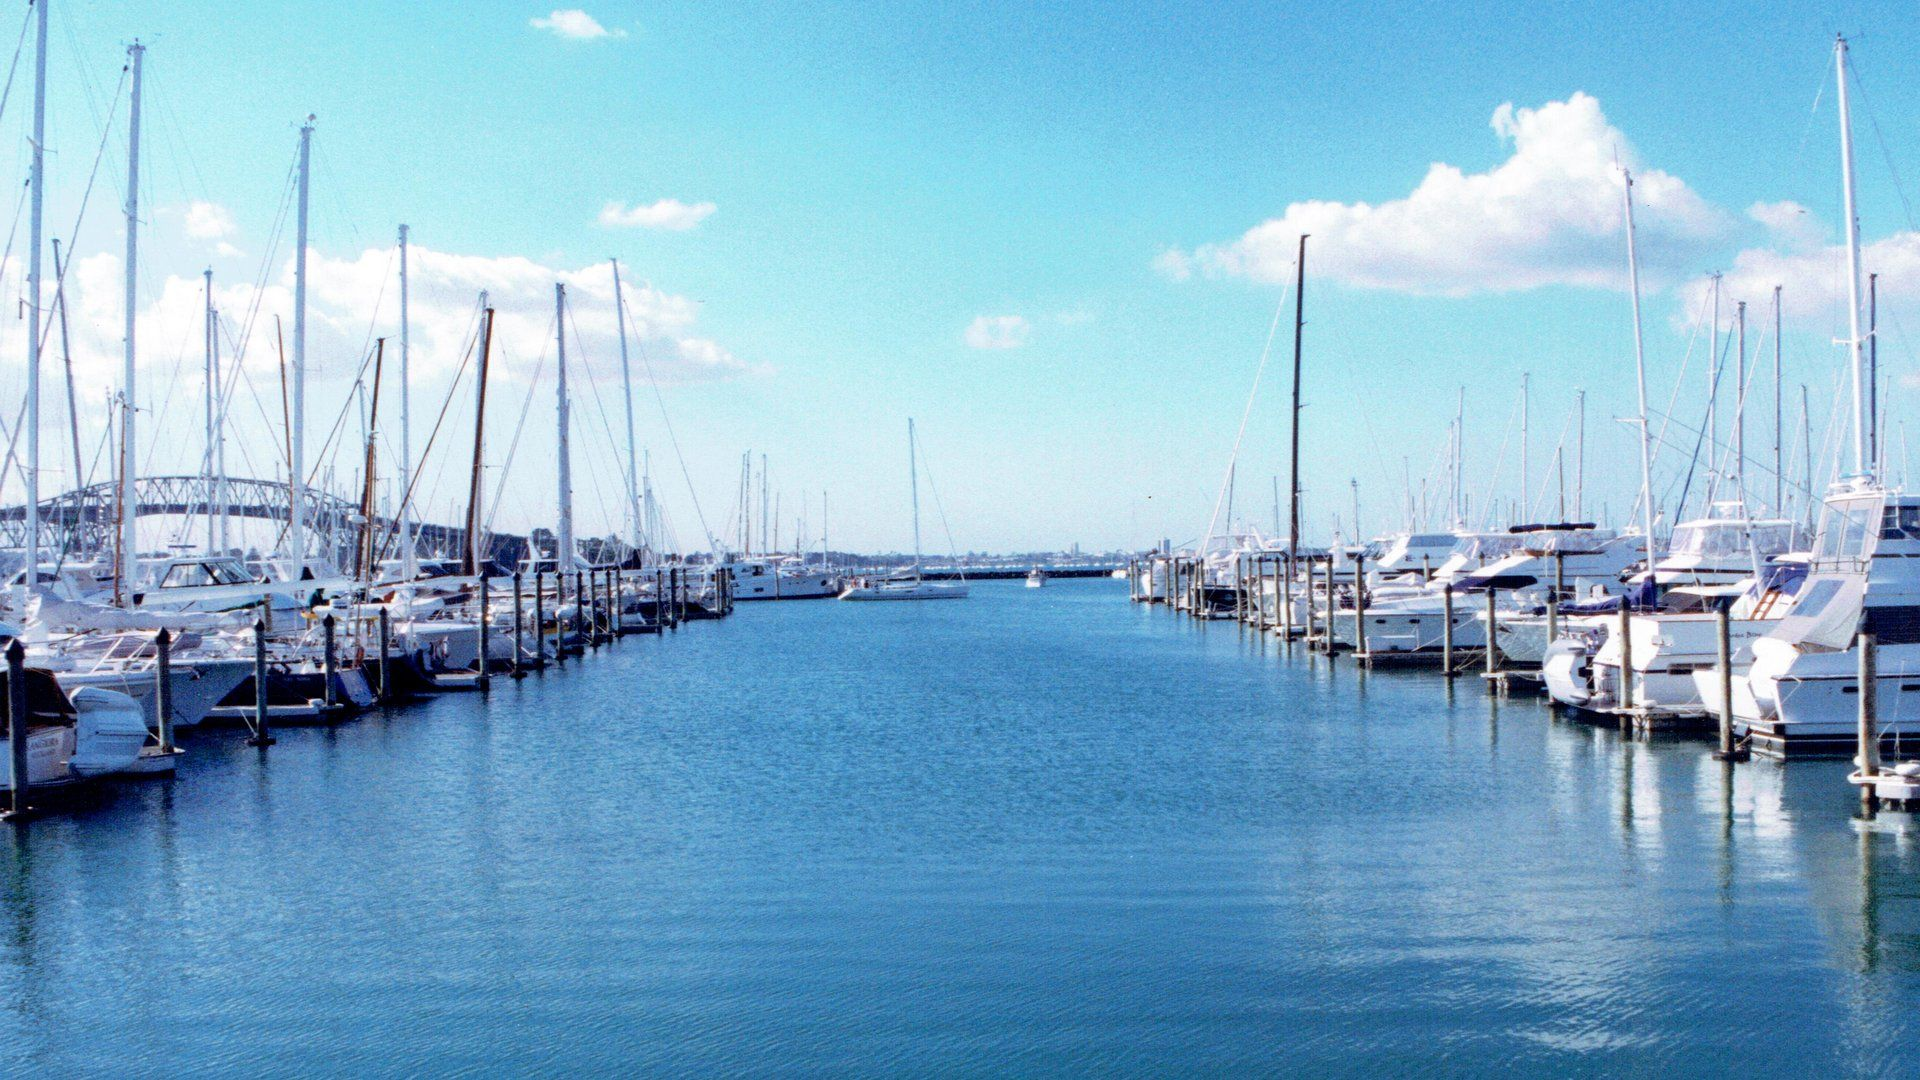 weathaven-marina-auckland-new-zealand